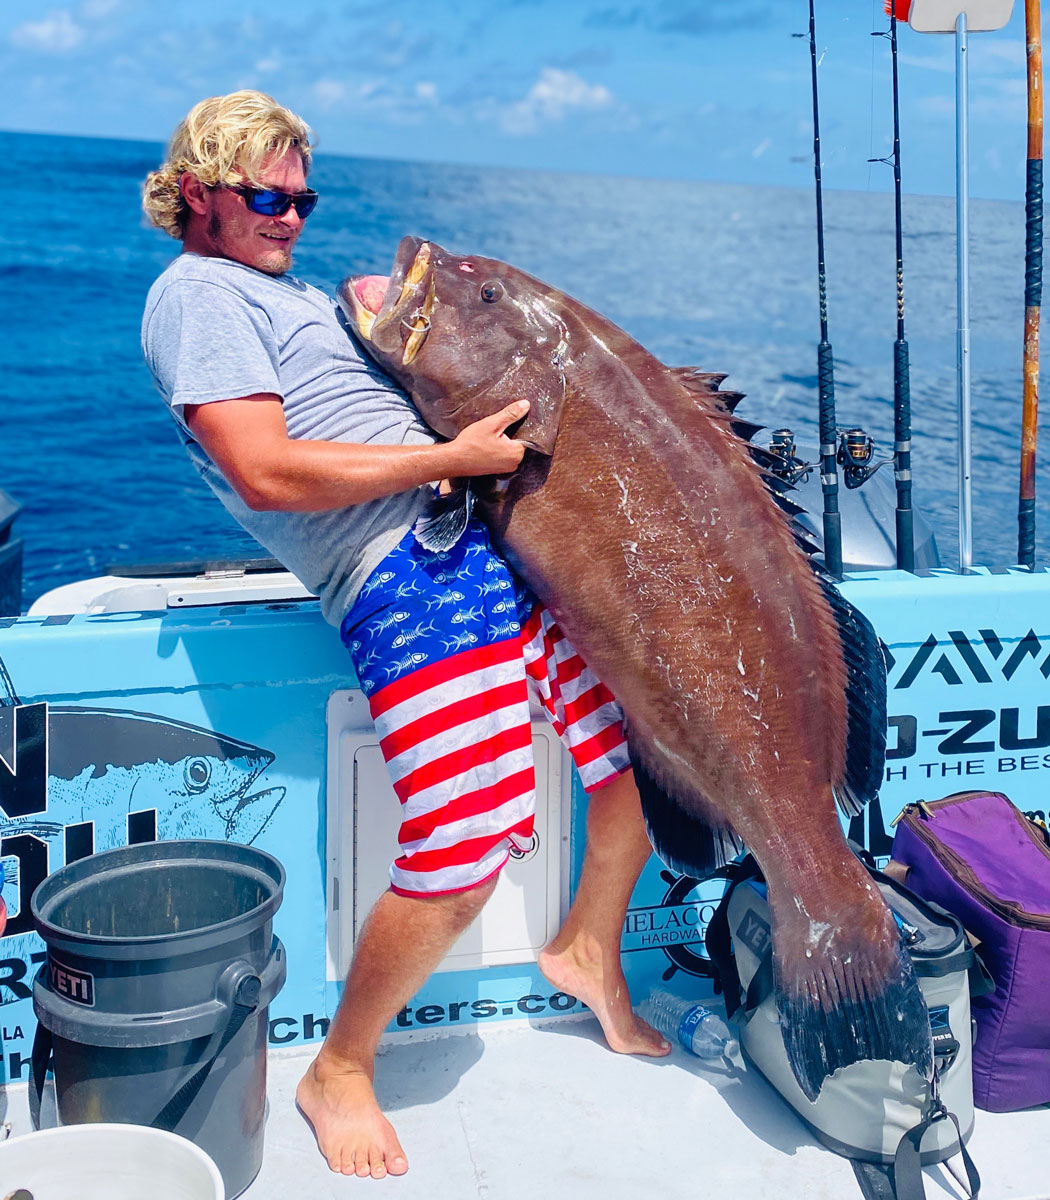 Capt. Ian Buzbee with Down the Bayou Charters lifting the giant grouper.